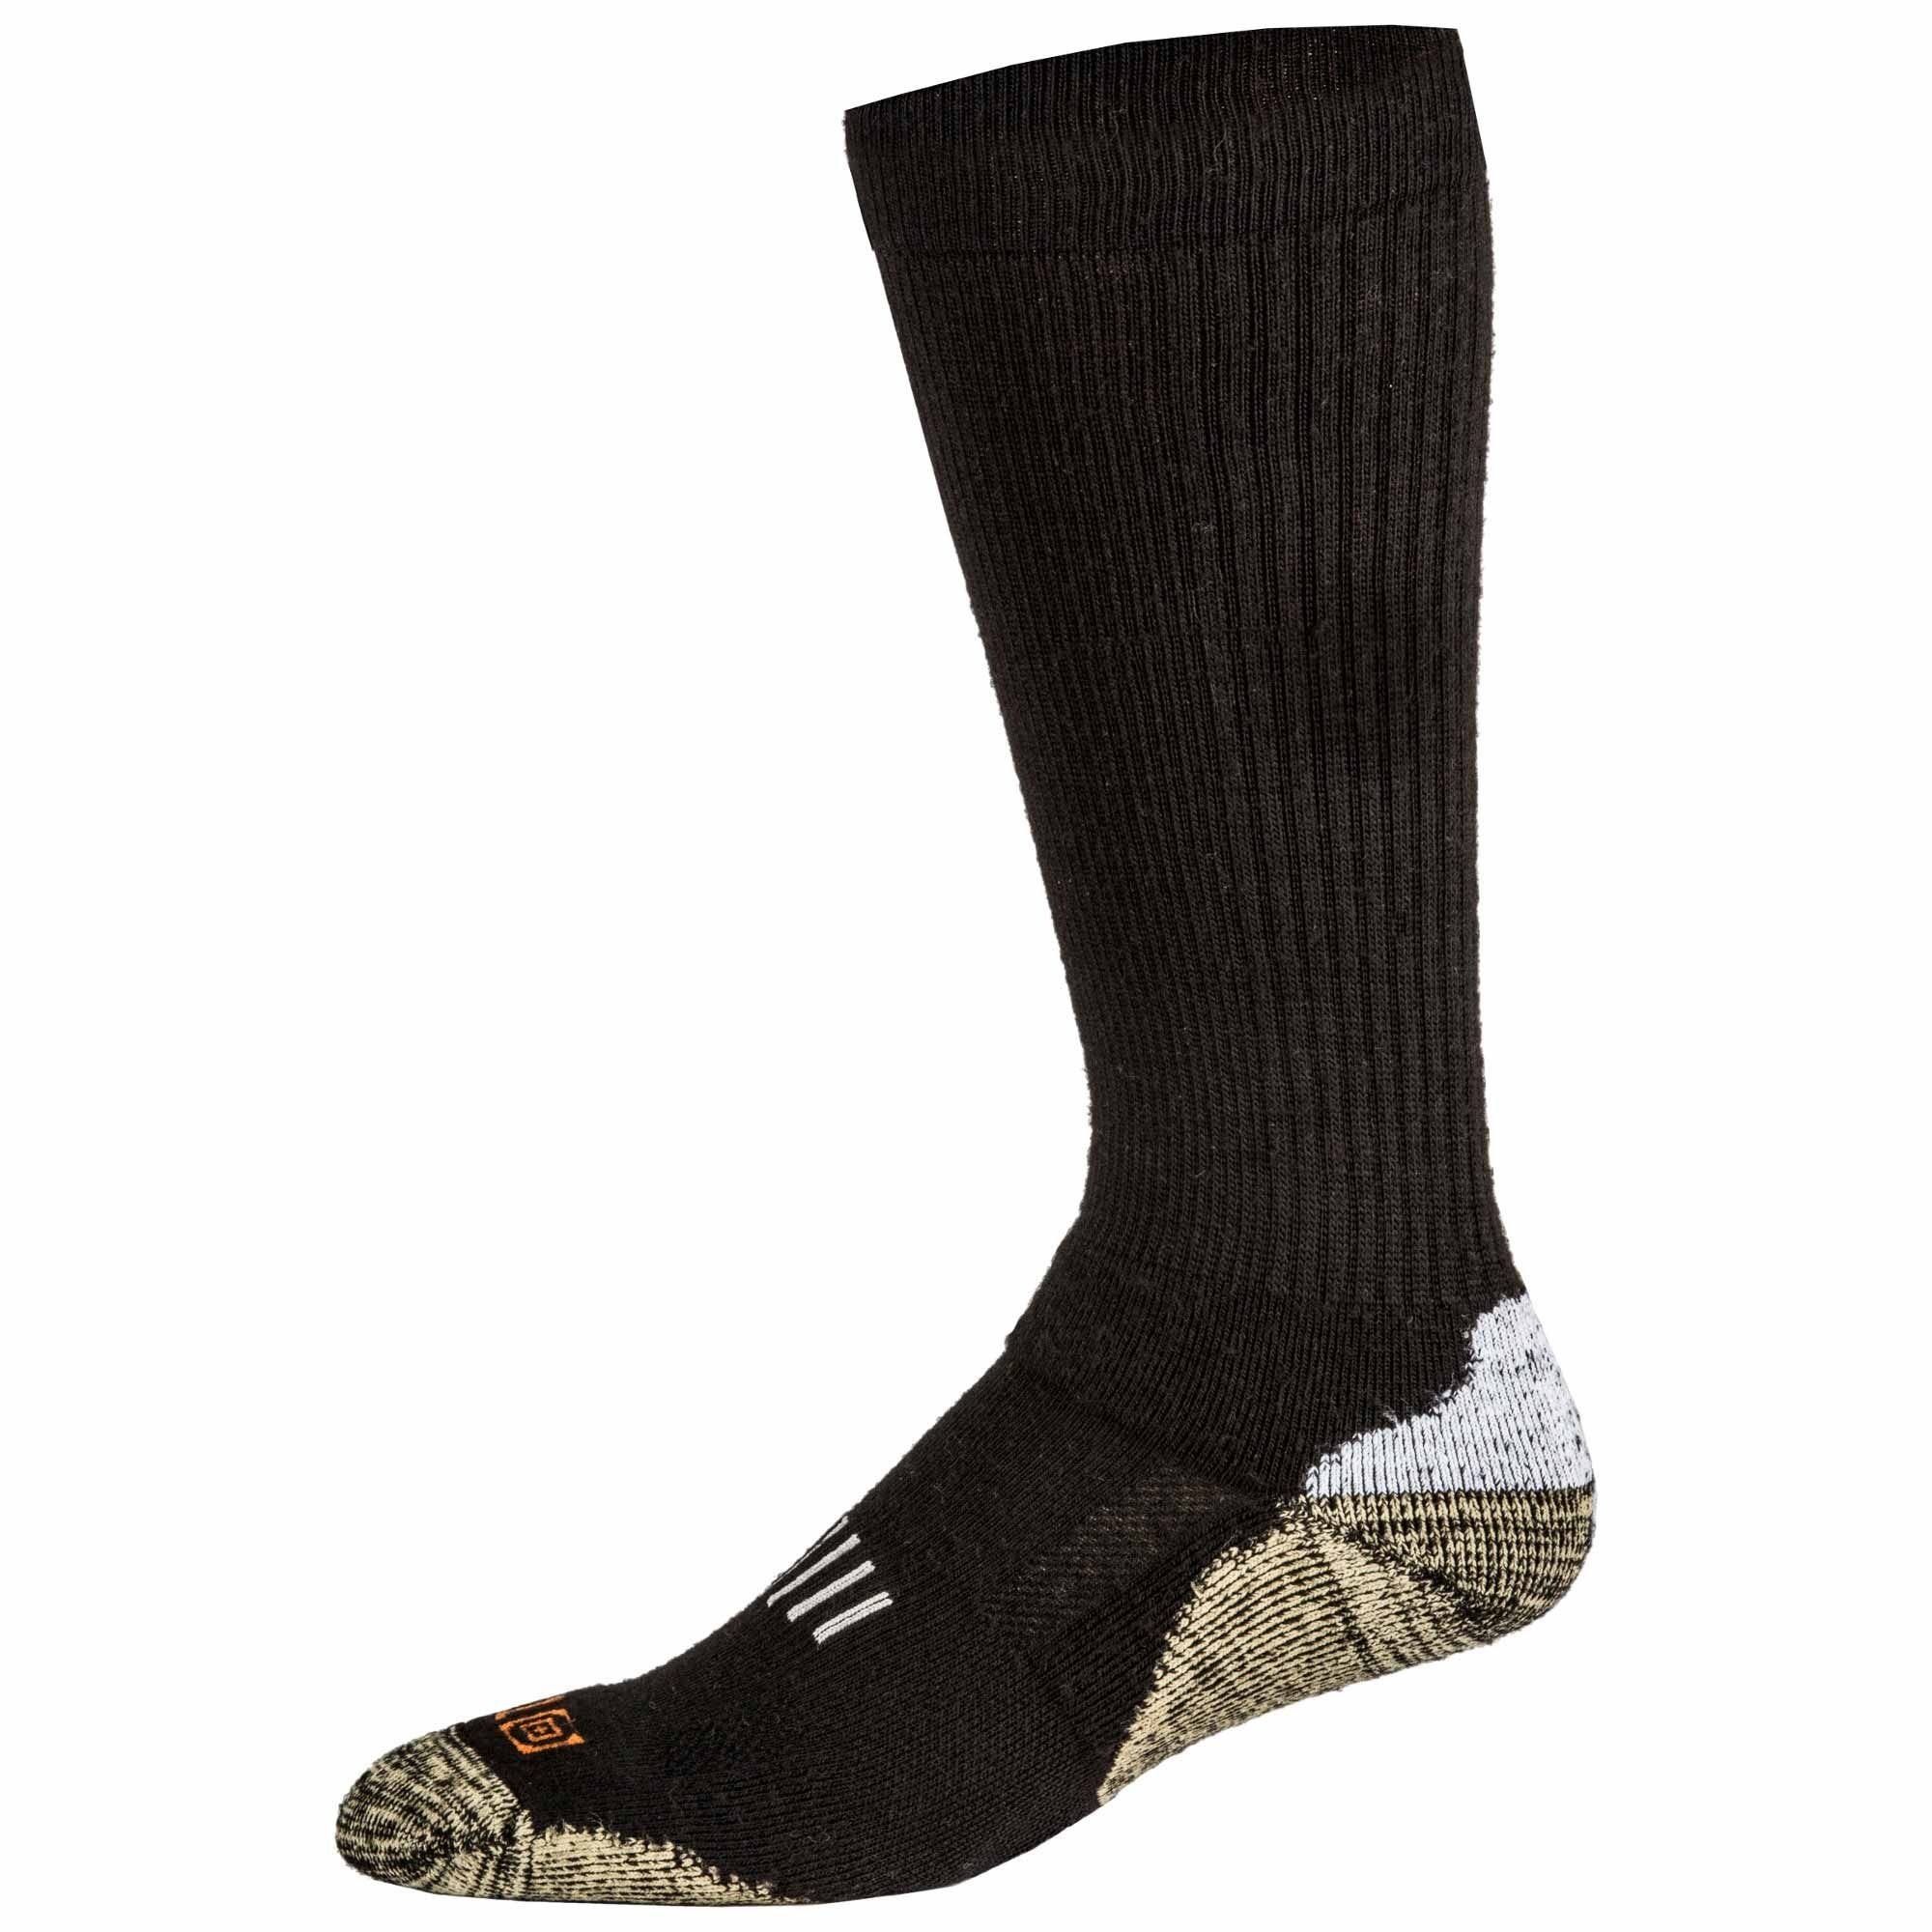 5.11 Tactical 10023BKSM 10023 Series Merino Wool Crew Sock, Unisex, Small, Black